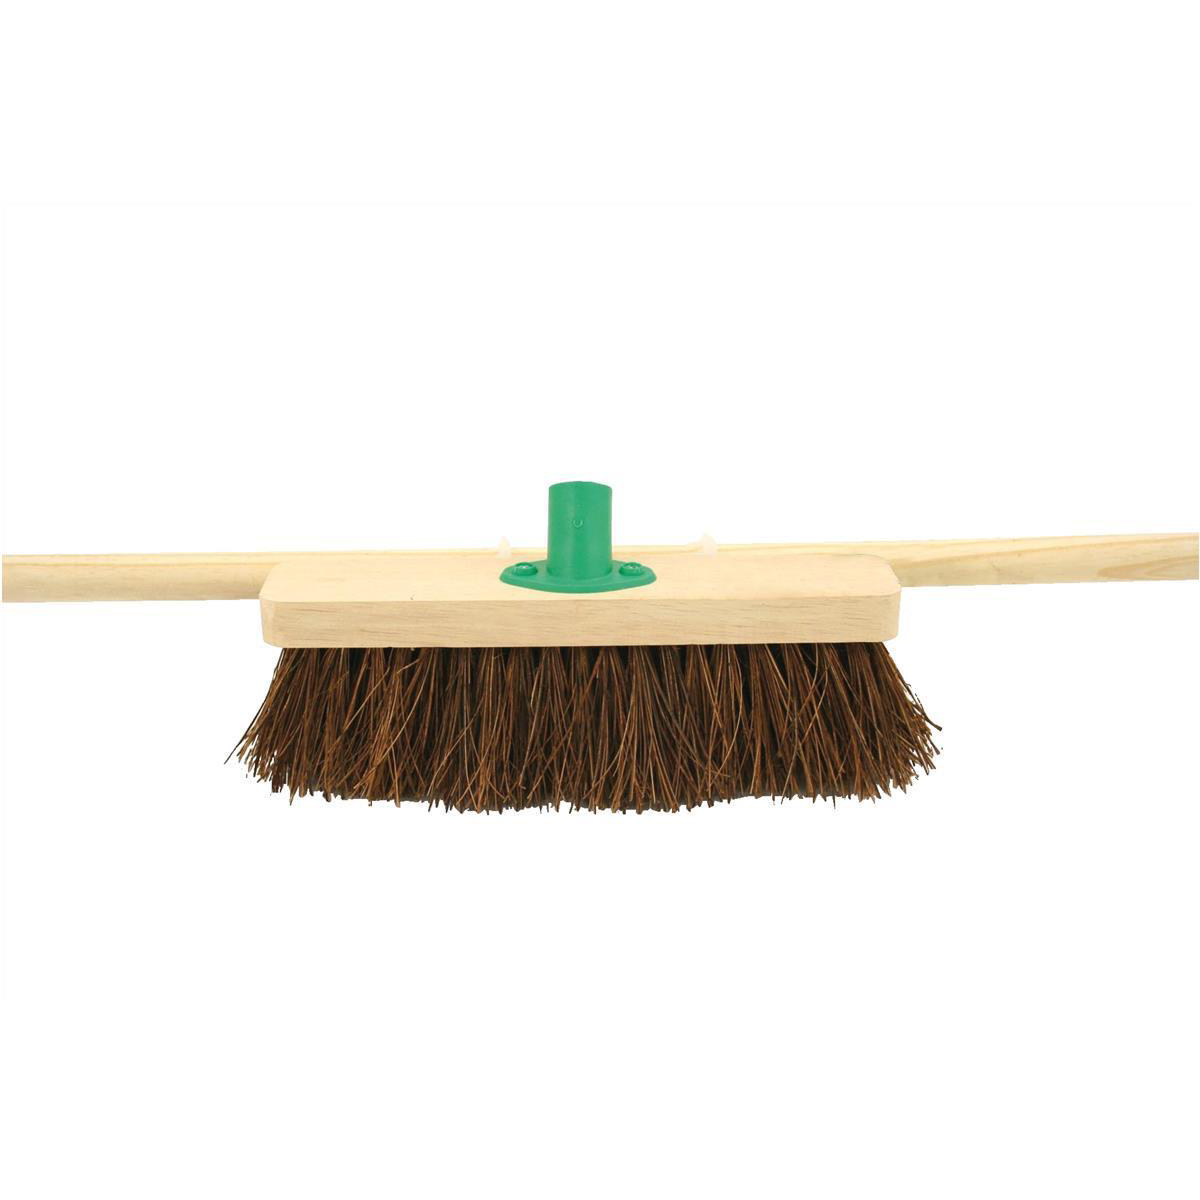 Brushes & Brooms Bentley 24inch Stiff Bassine Broom with Handle & Bracket Ref SPC/H12BKT/C4